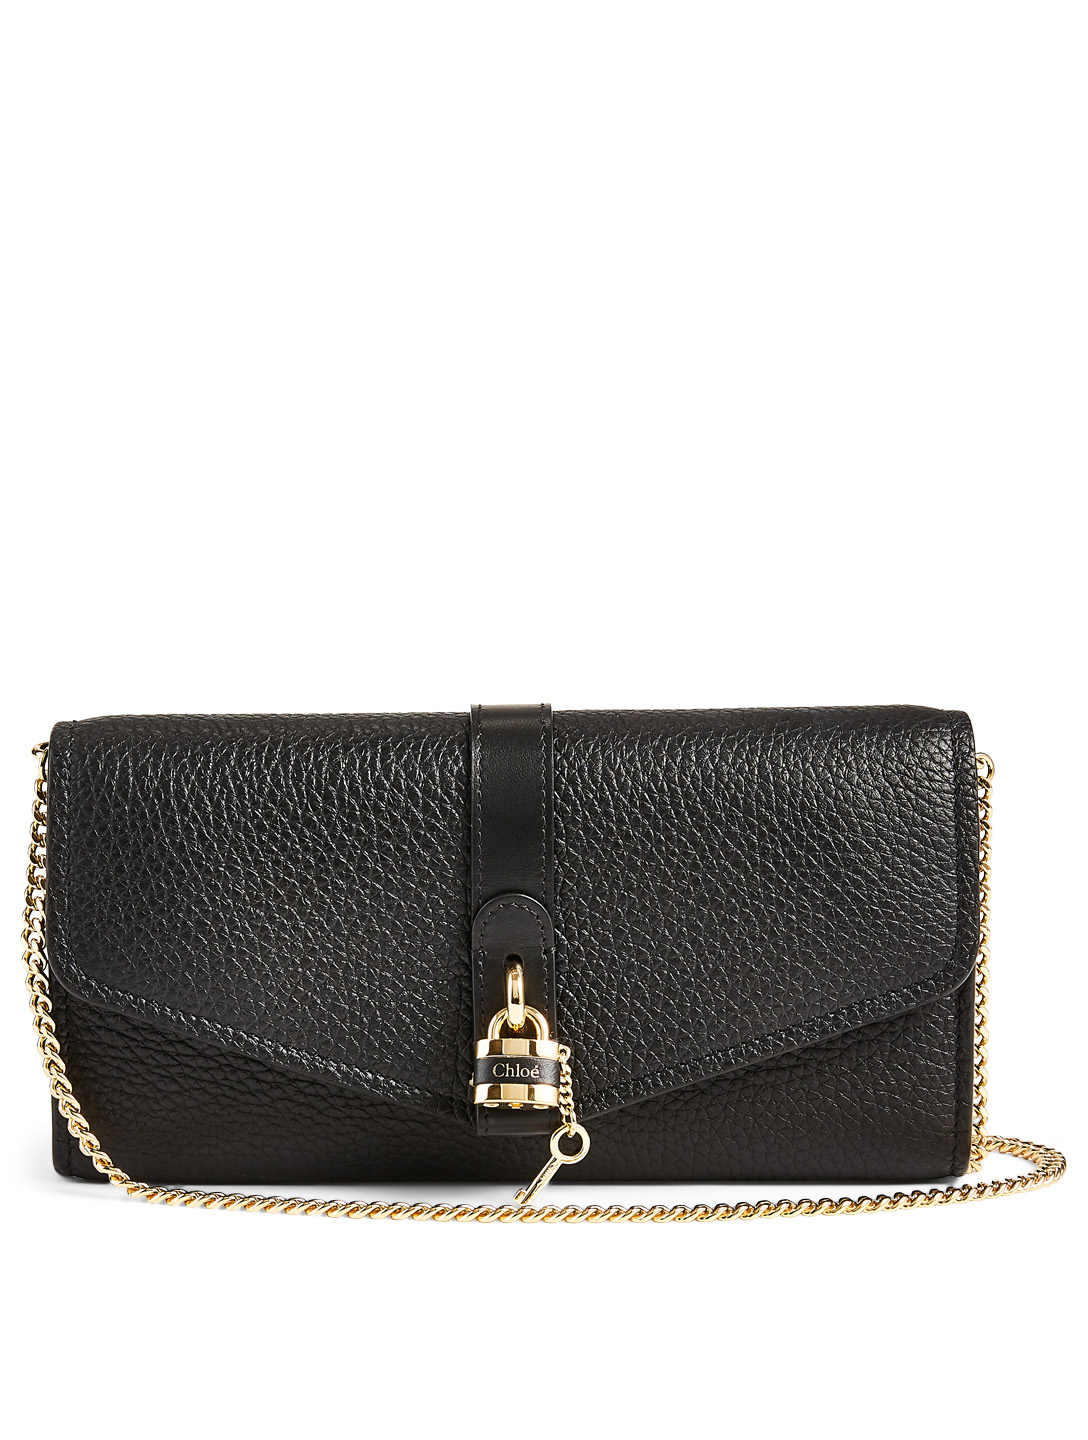 CHLOÉ Aby Leather Chain Clutch Bag Women's Black